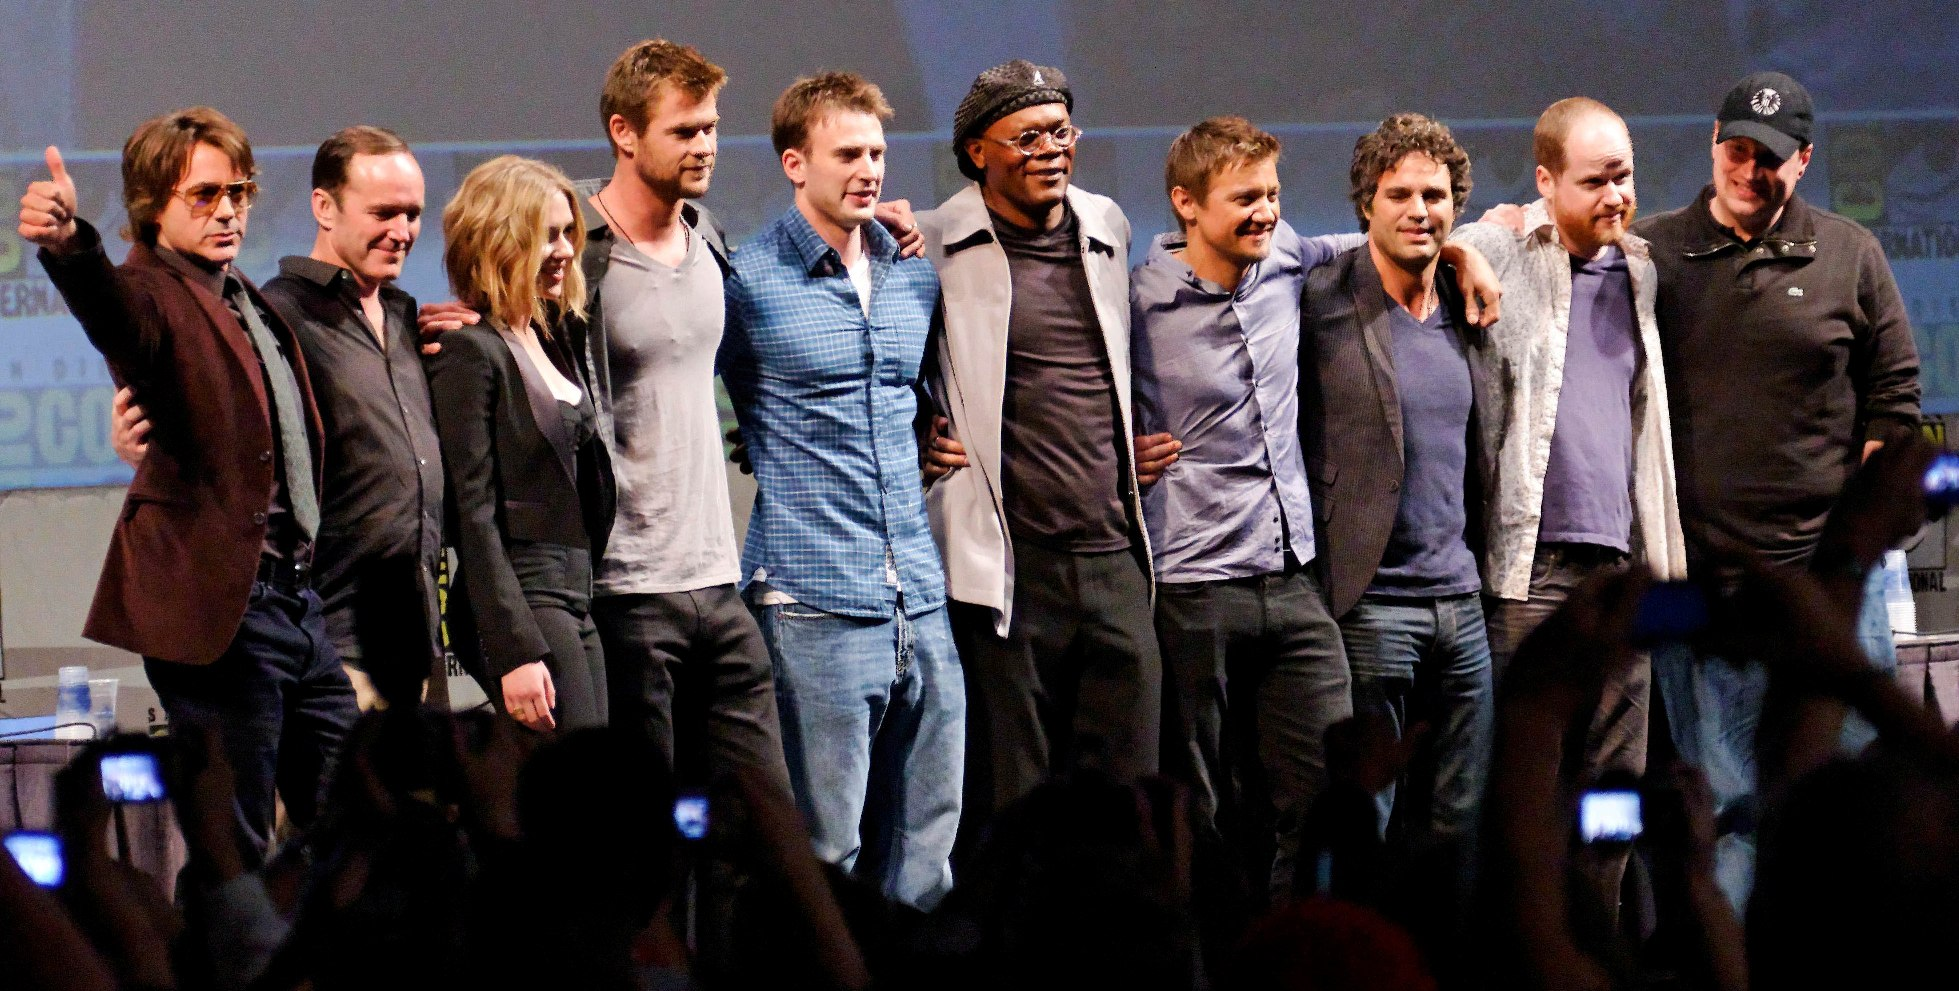 Image result for The Avengers cast